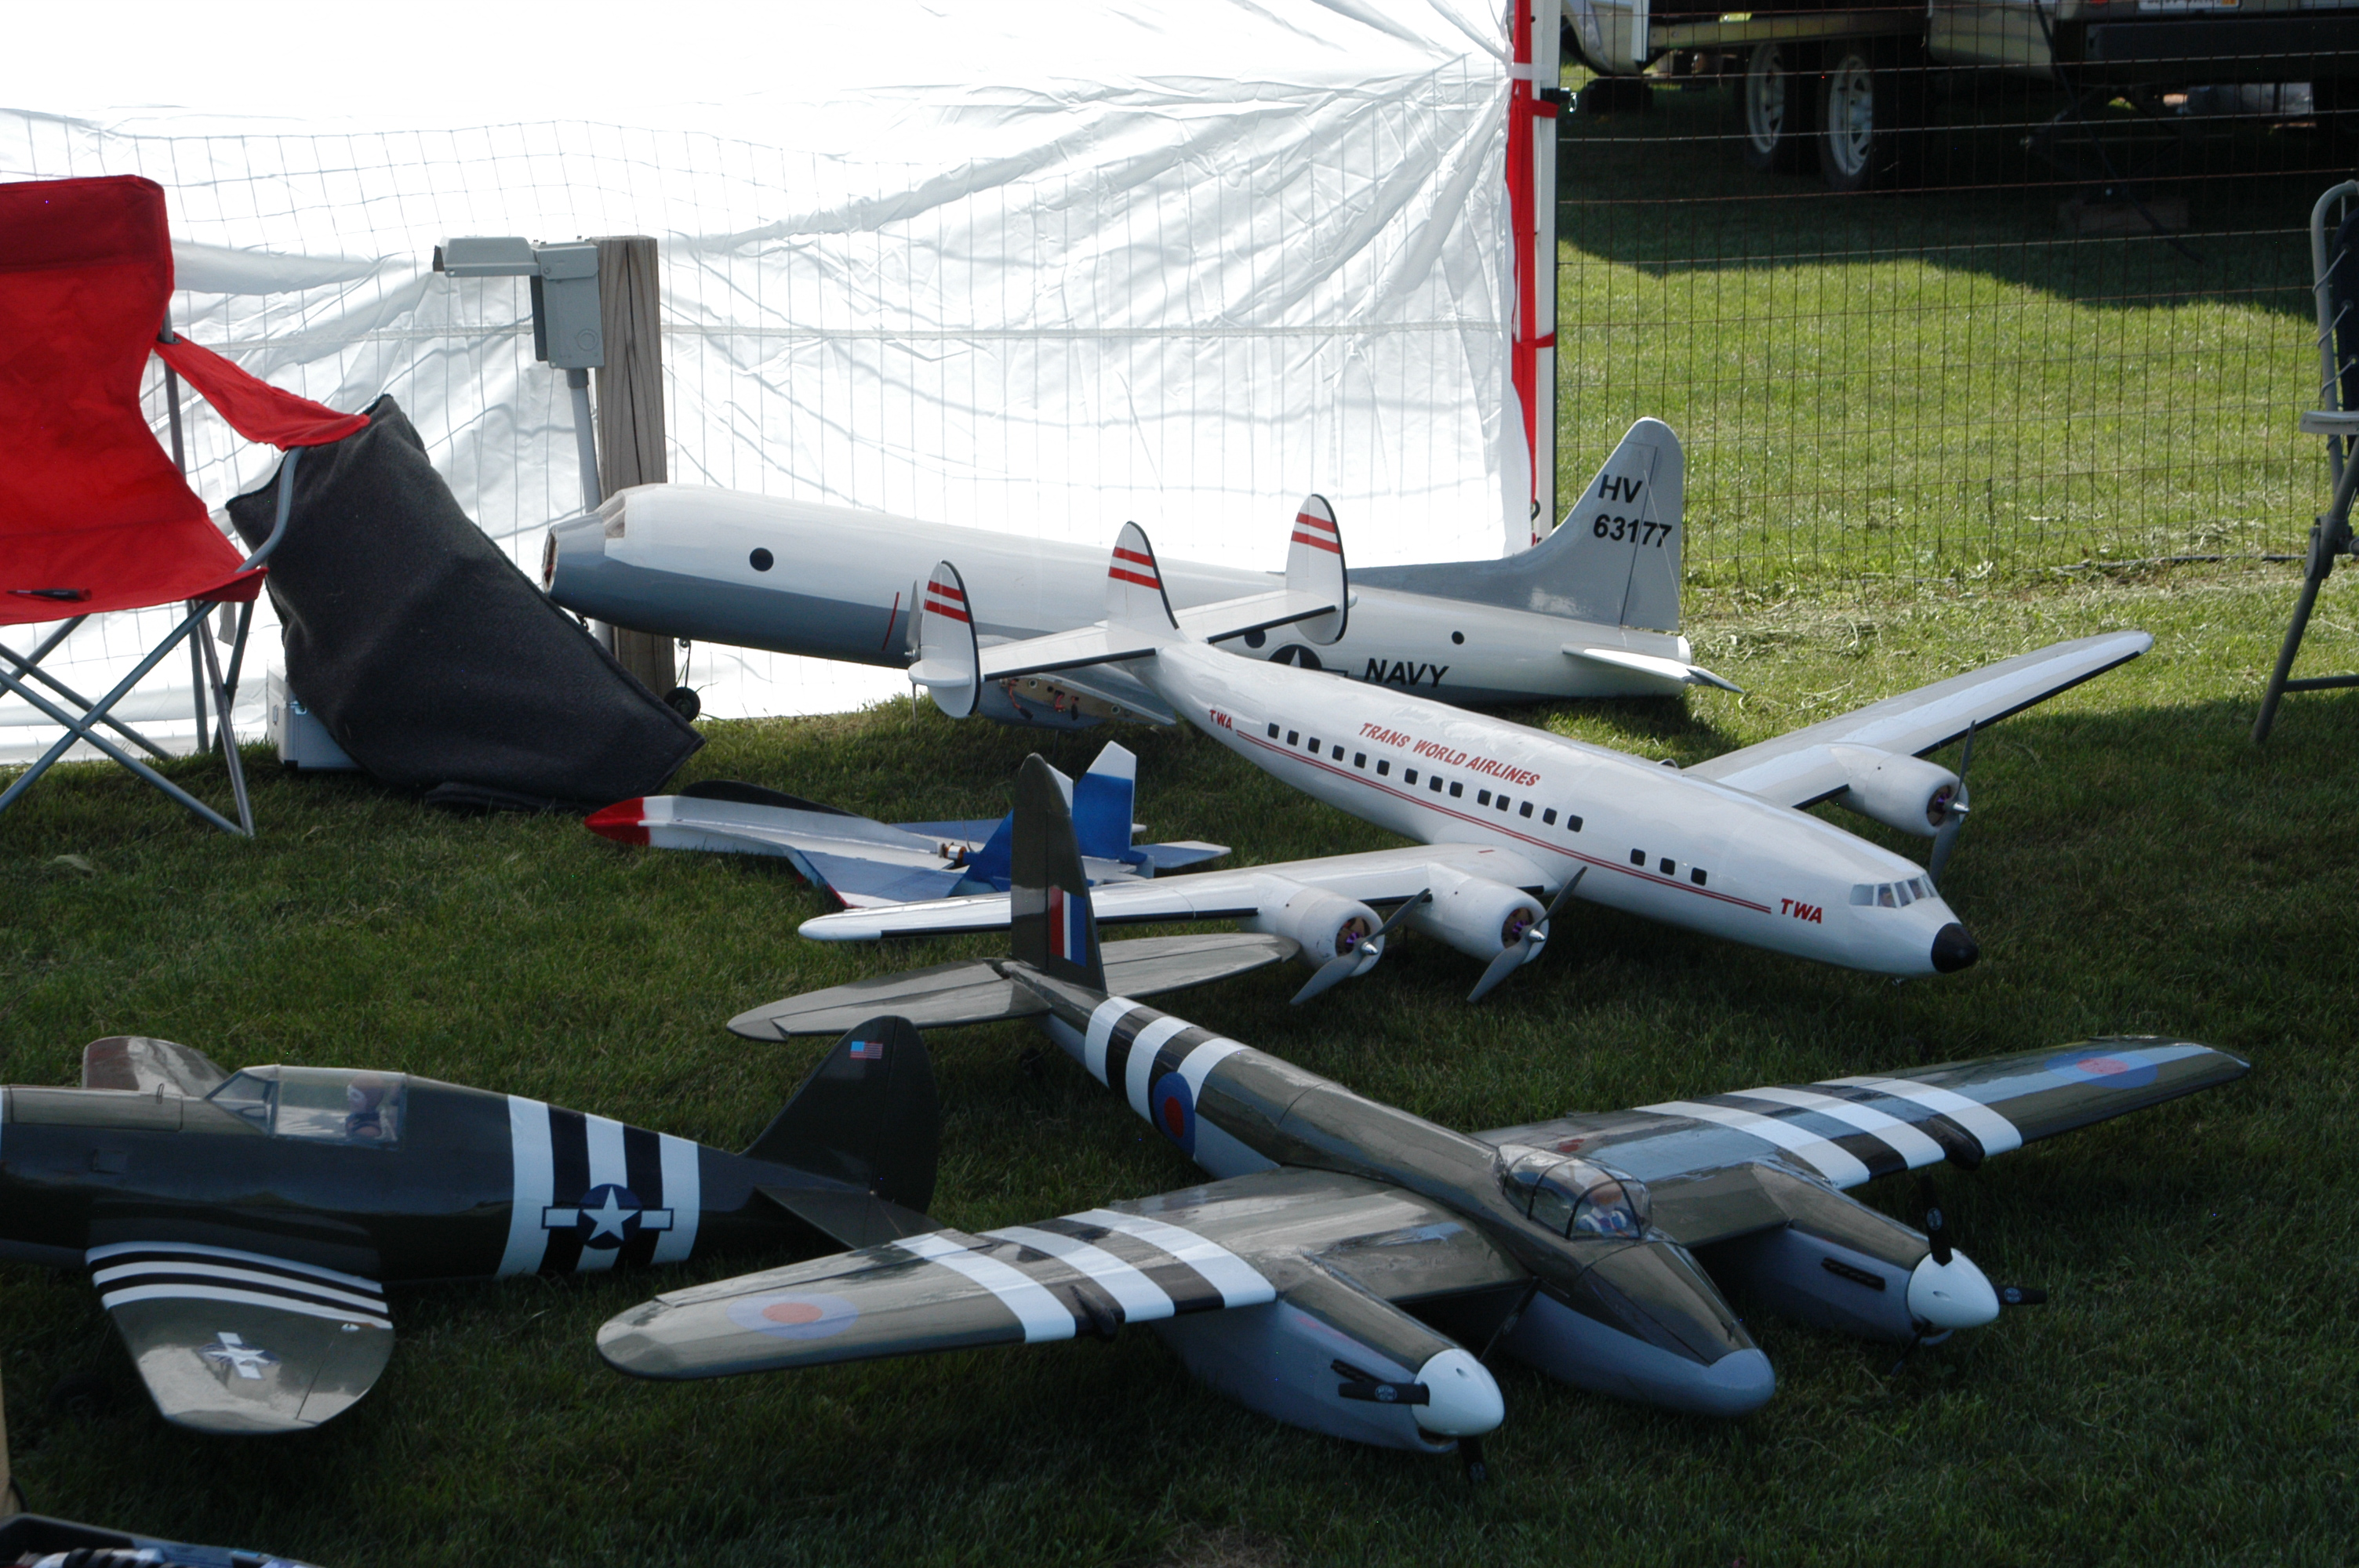 A large number of twin engine models were at the event.